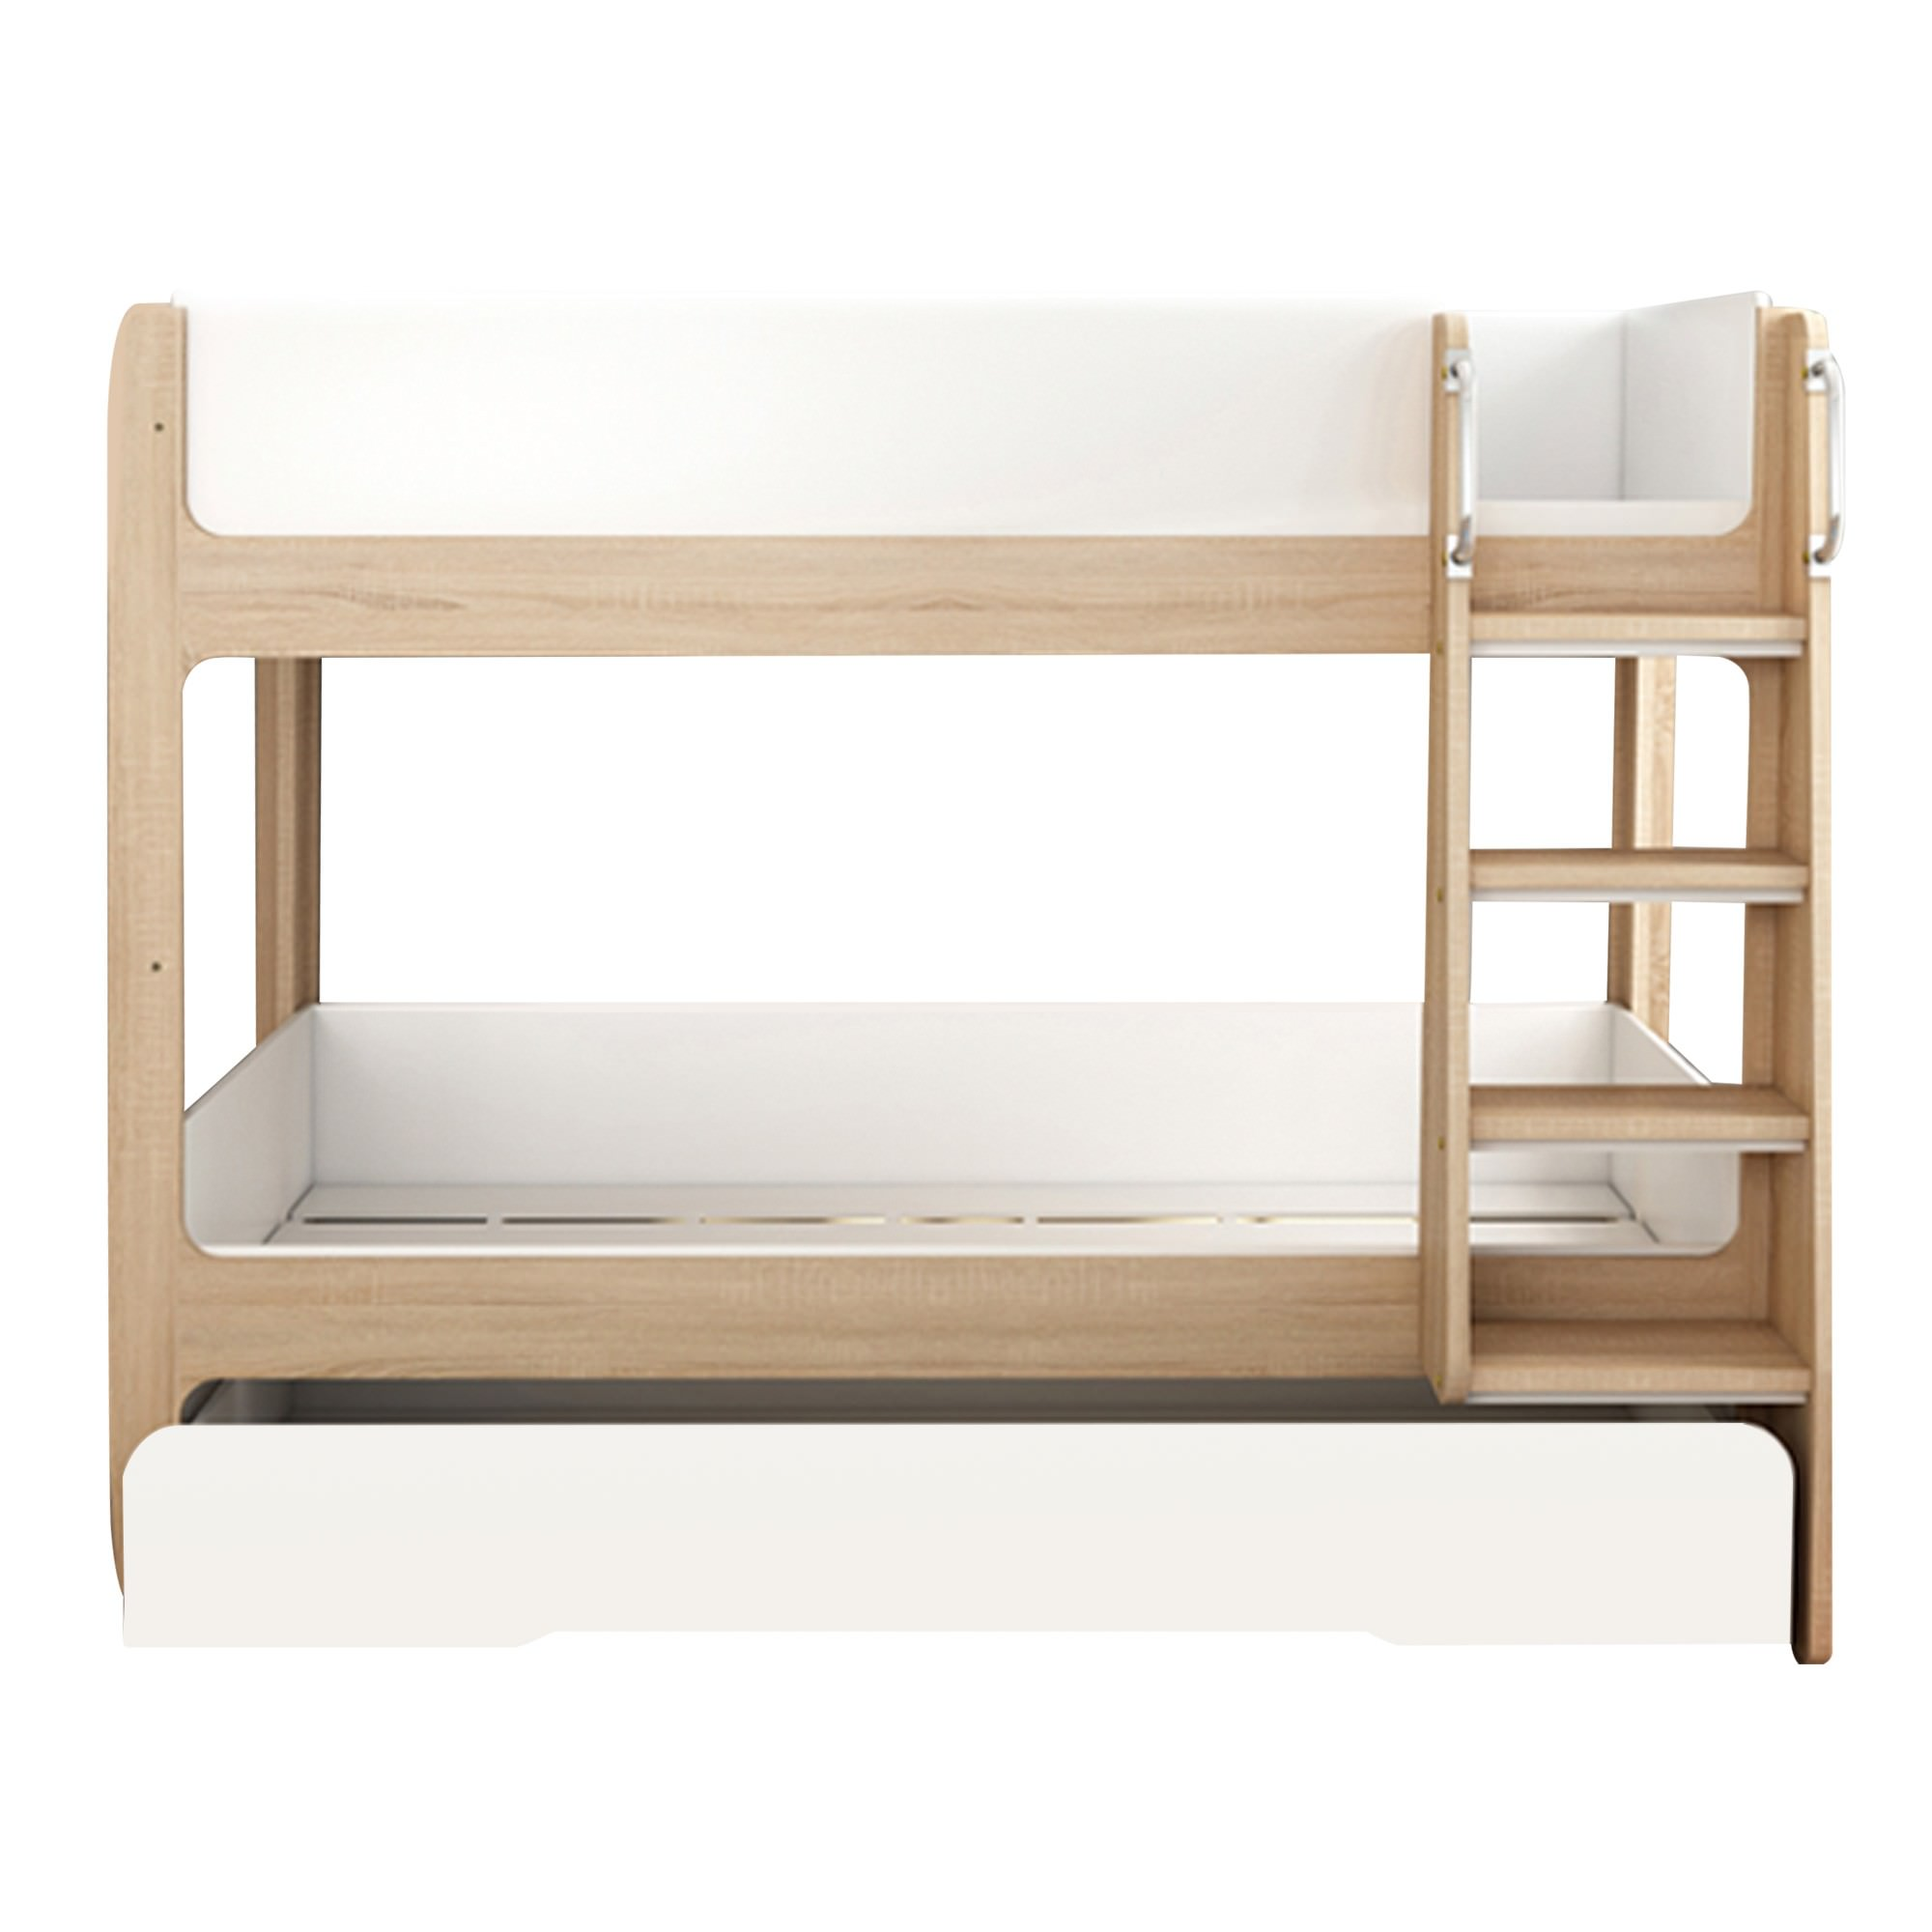 Colehill Bunk Bed with Trundle, Single